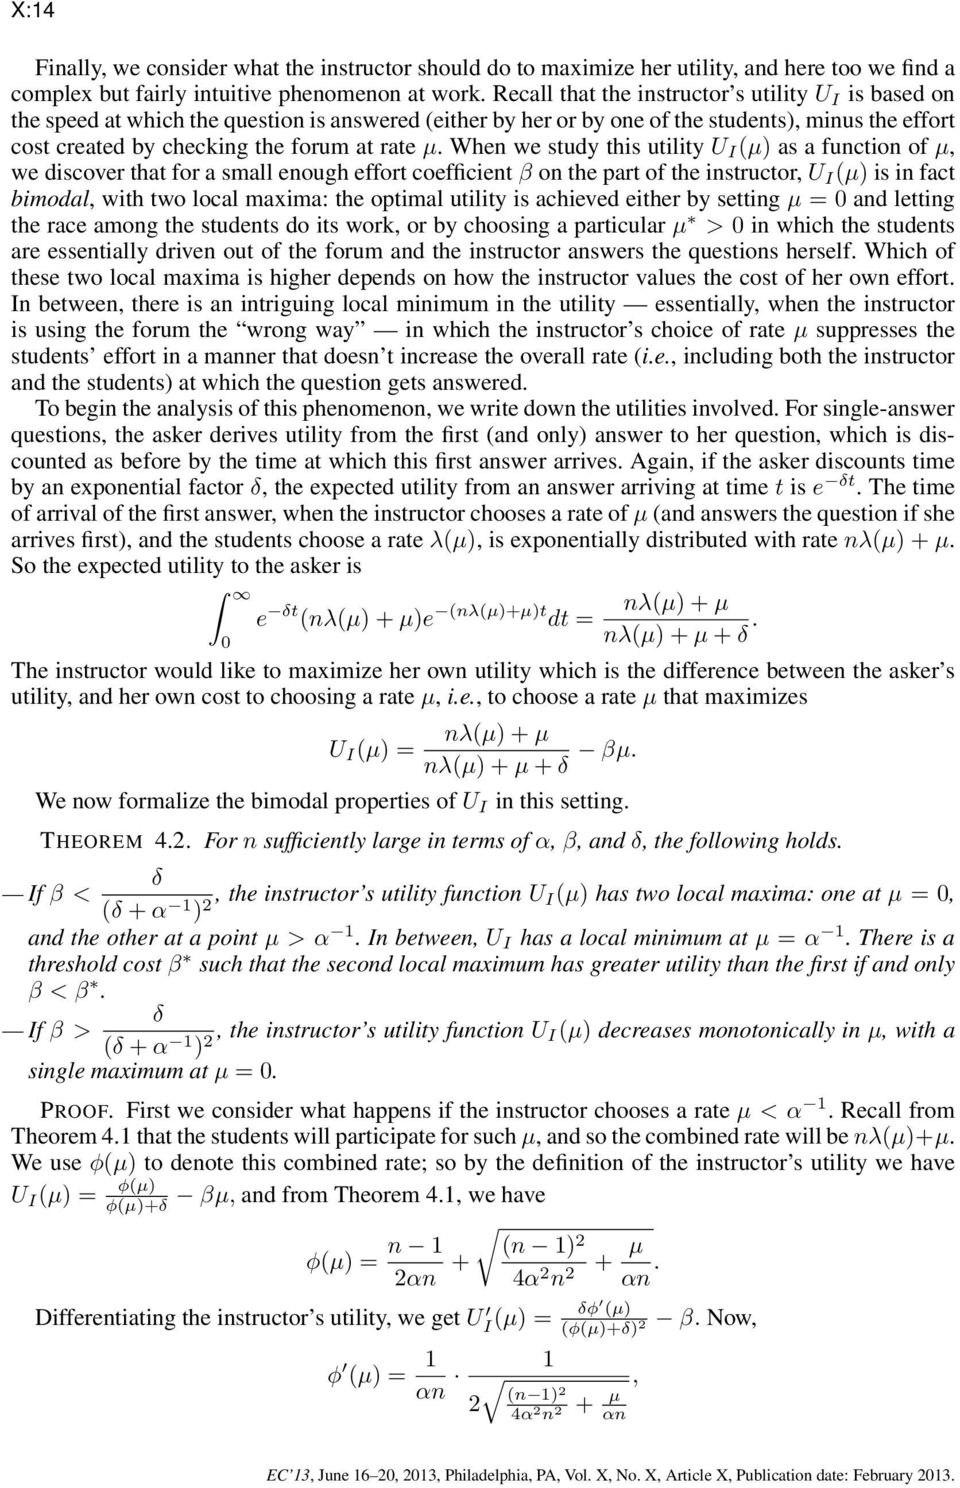 µ. When we study this utility U I (µ) as a function of µ, we discover that for a small enough effort coefficient β on the part of the instructor, U I (µ) is in fact bimodal, with two local maxima: